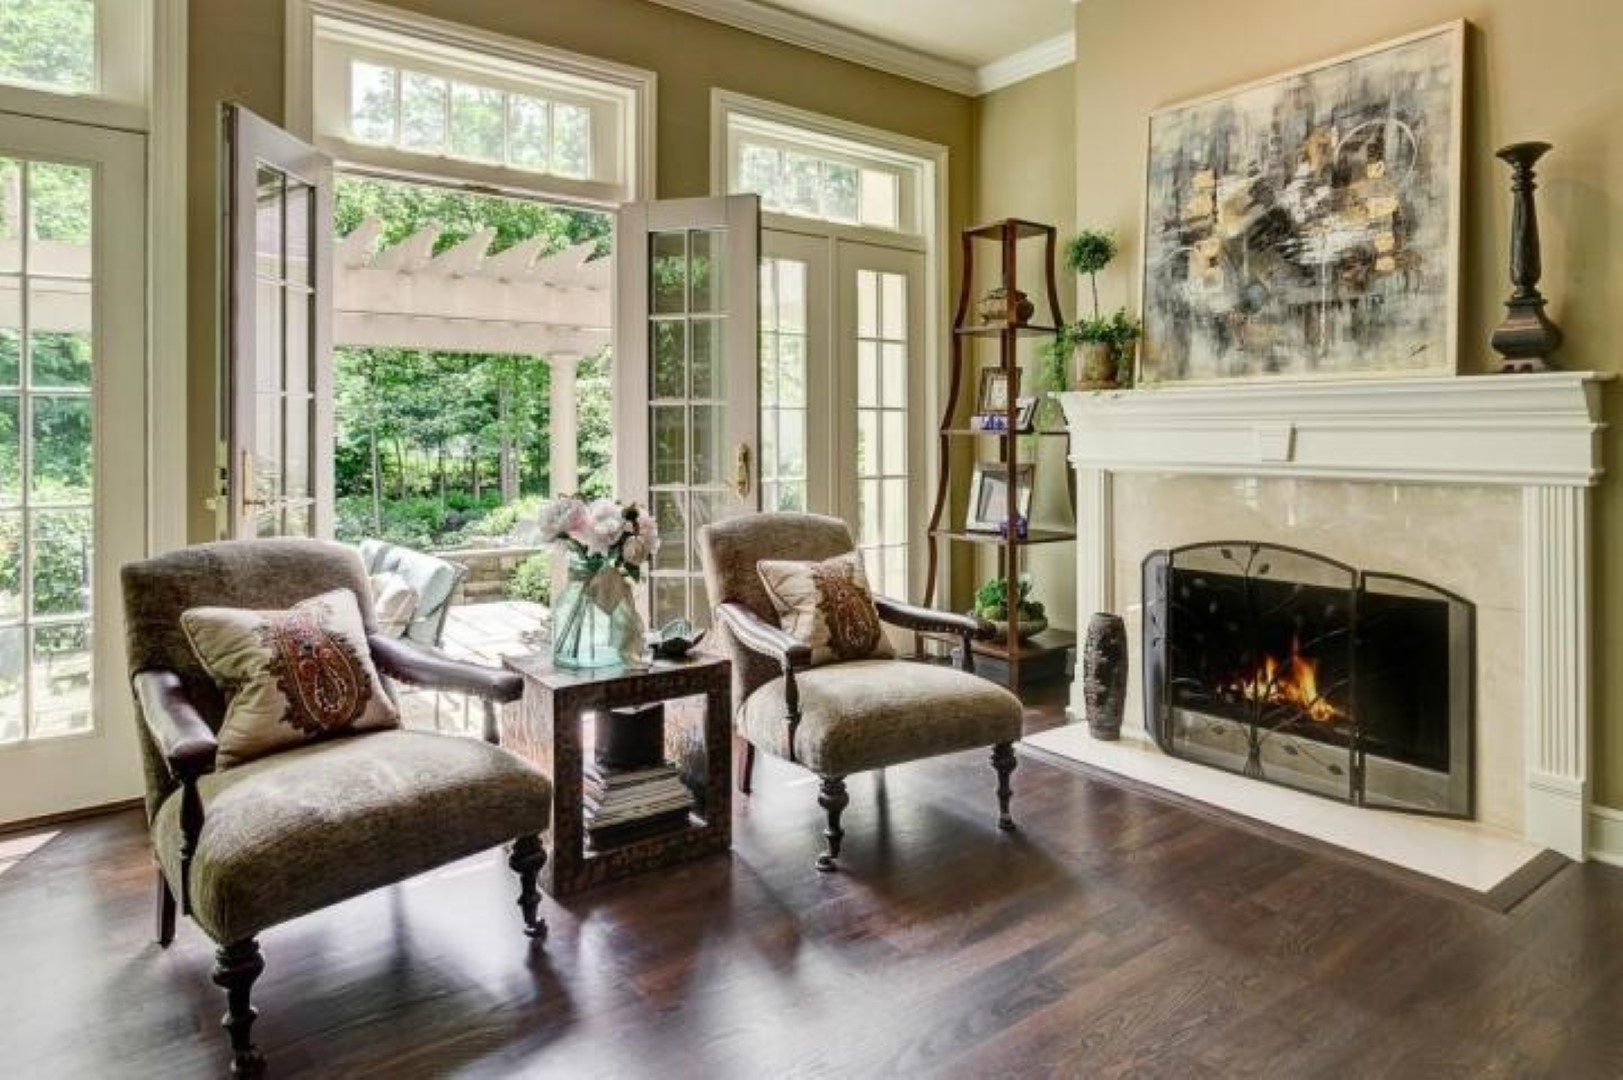 Best Interior Designers in Ohio